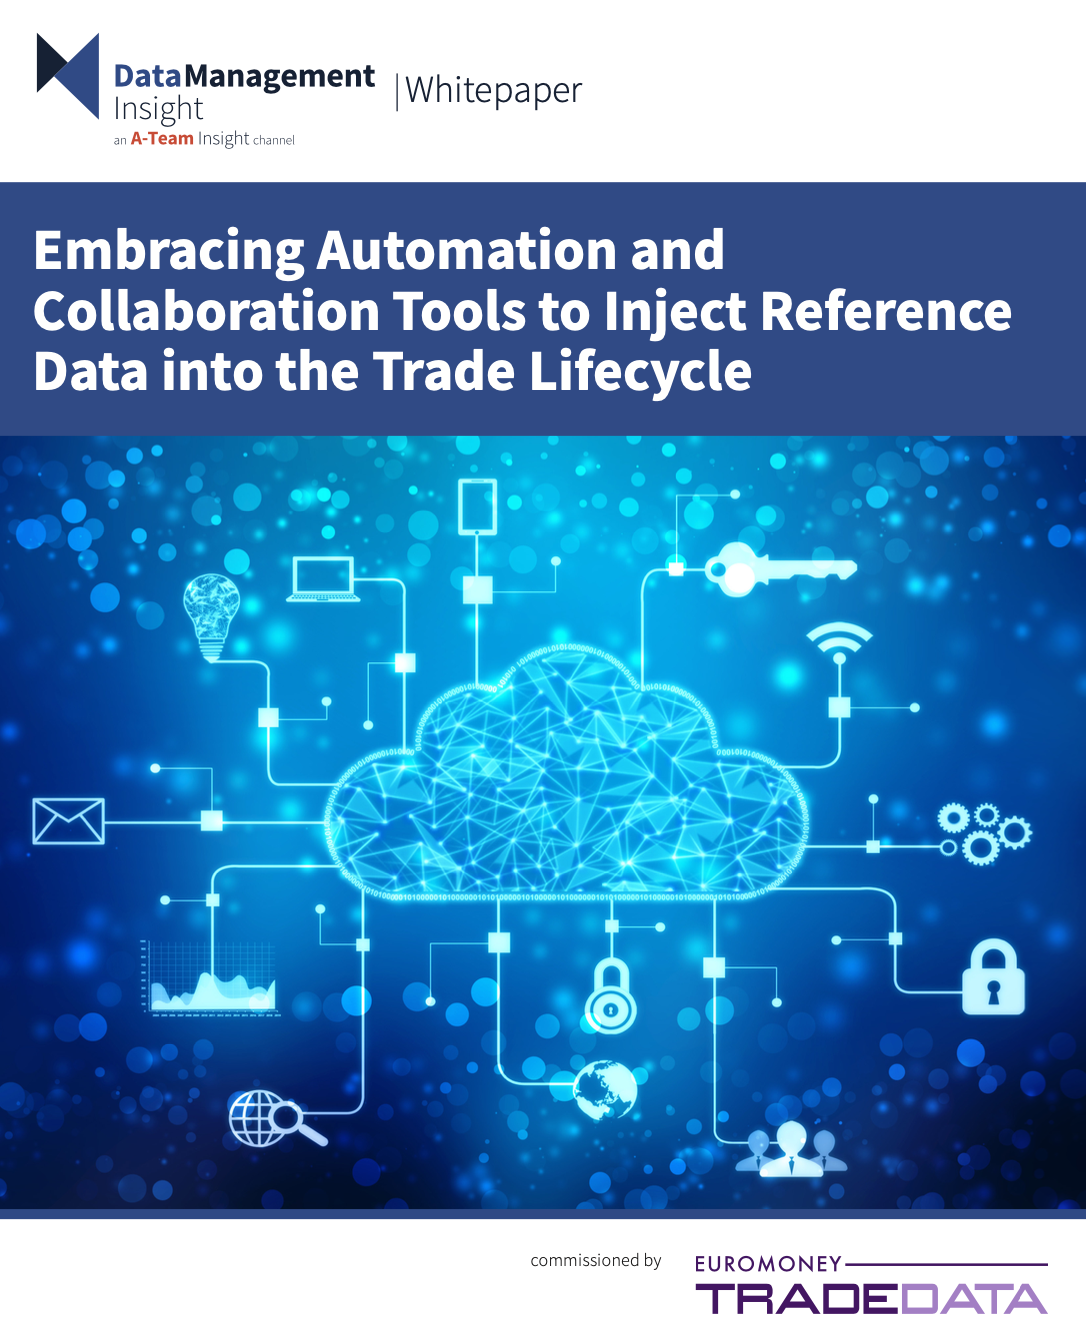 Embracing Automation and Collaboration Tools to Inject Reference Data into the Trade Lifecycle